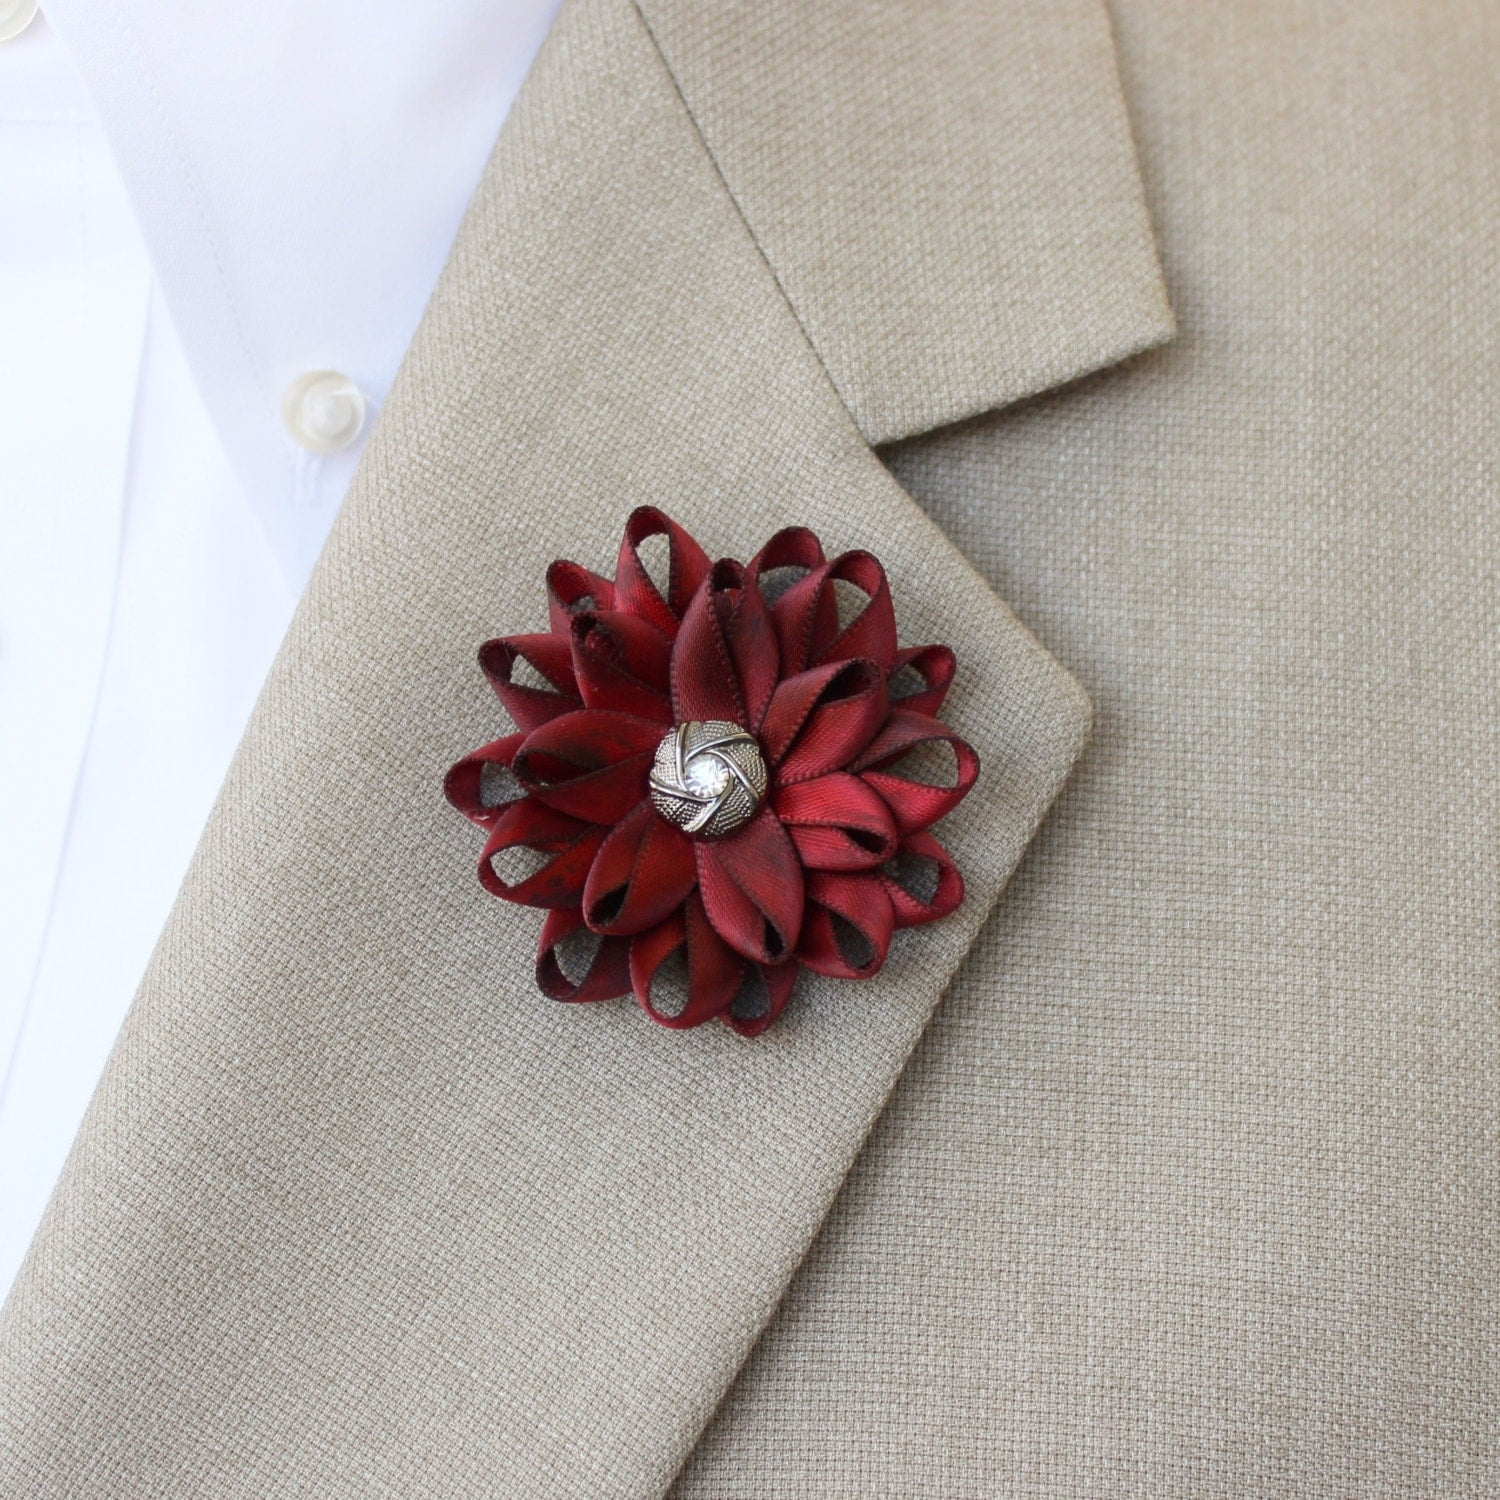 Mens Lapel Flower Mens Flower Lapel Pin Dark Red Boutonniere Gifts for Men